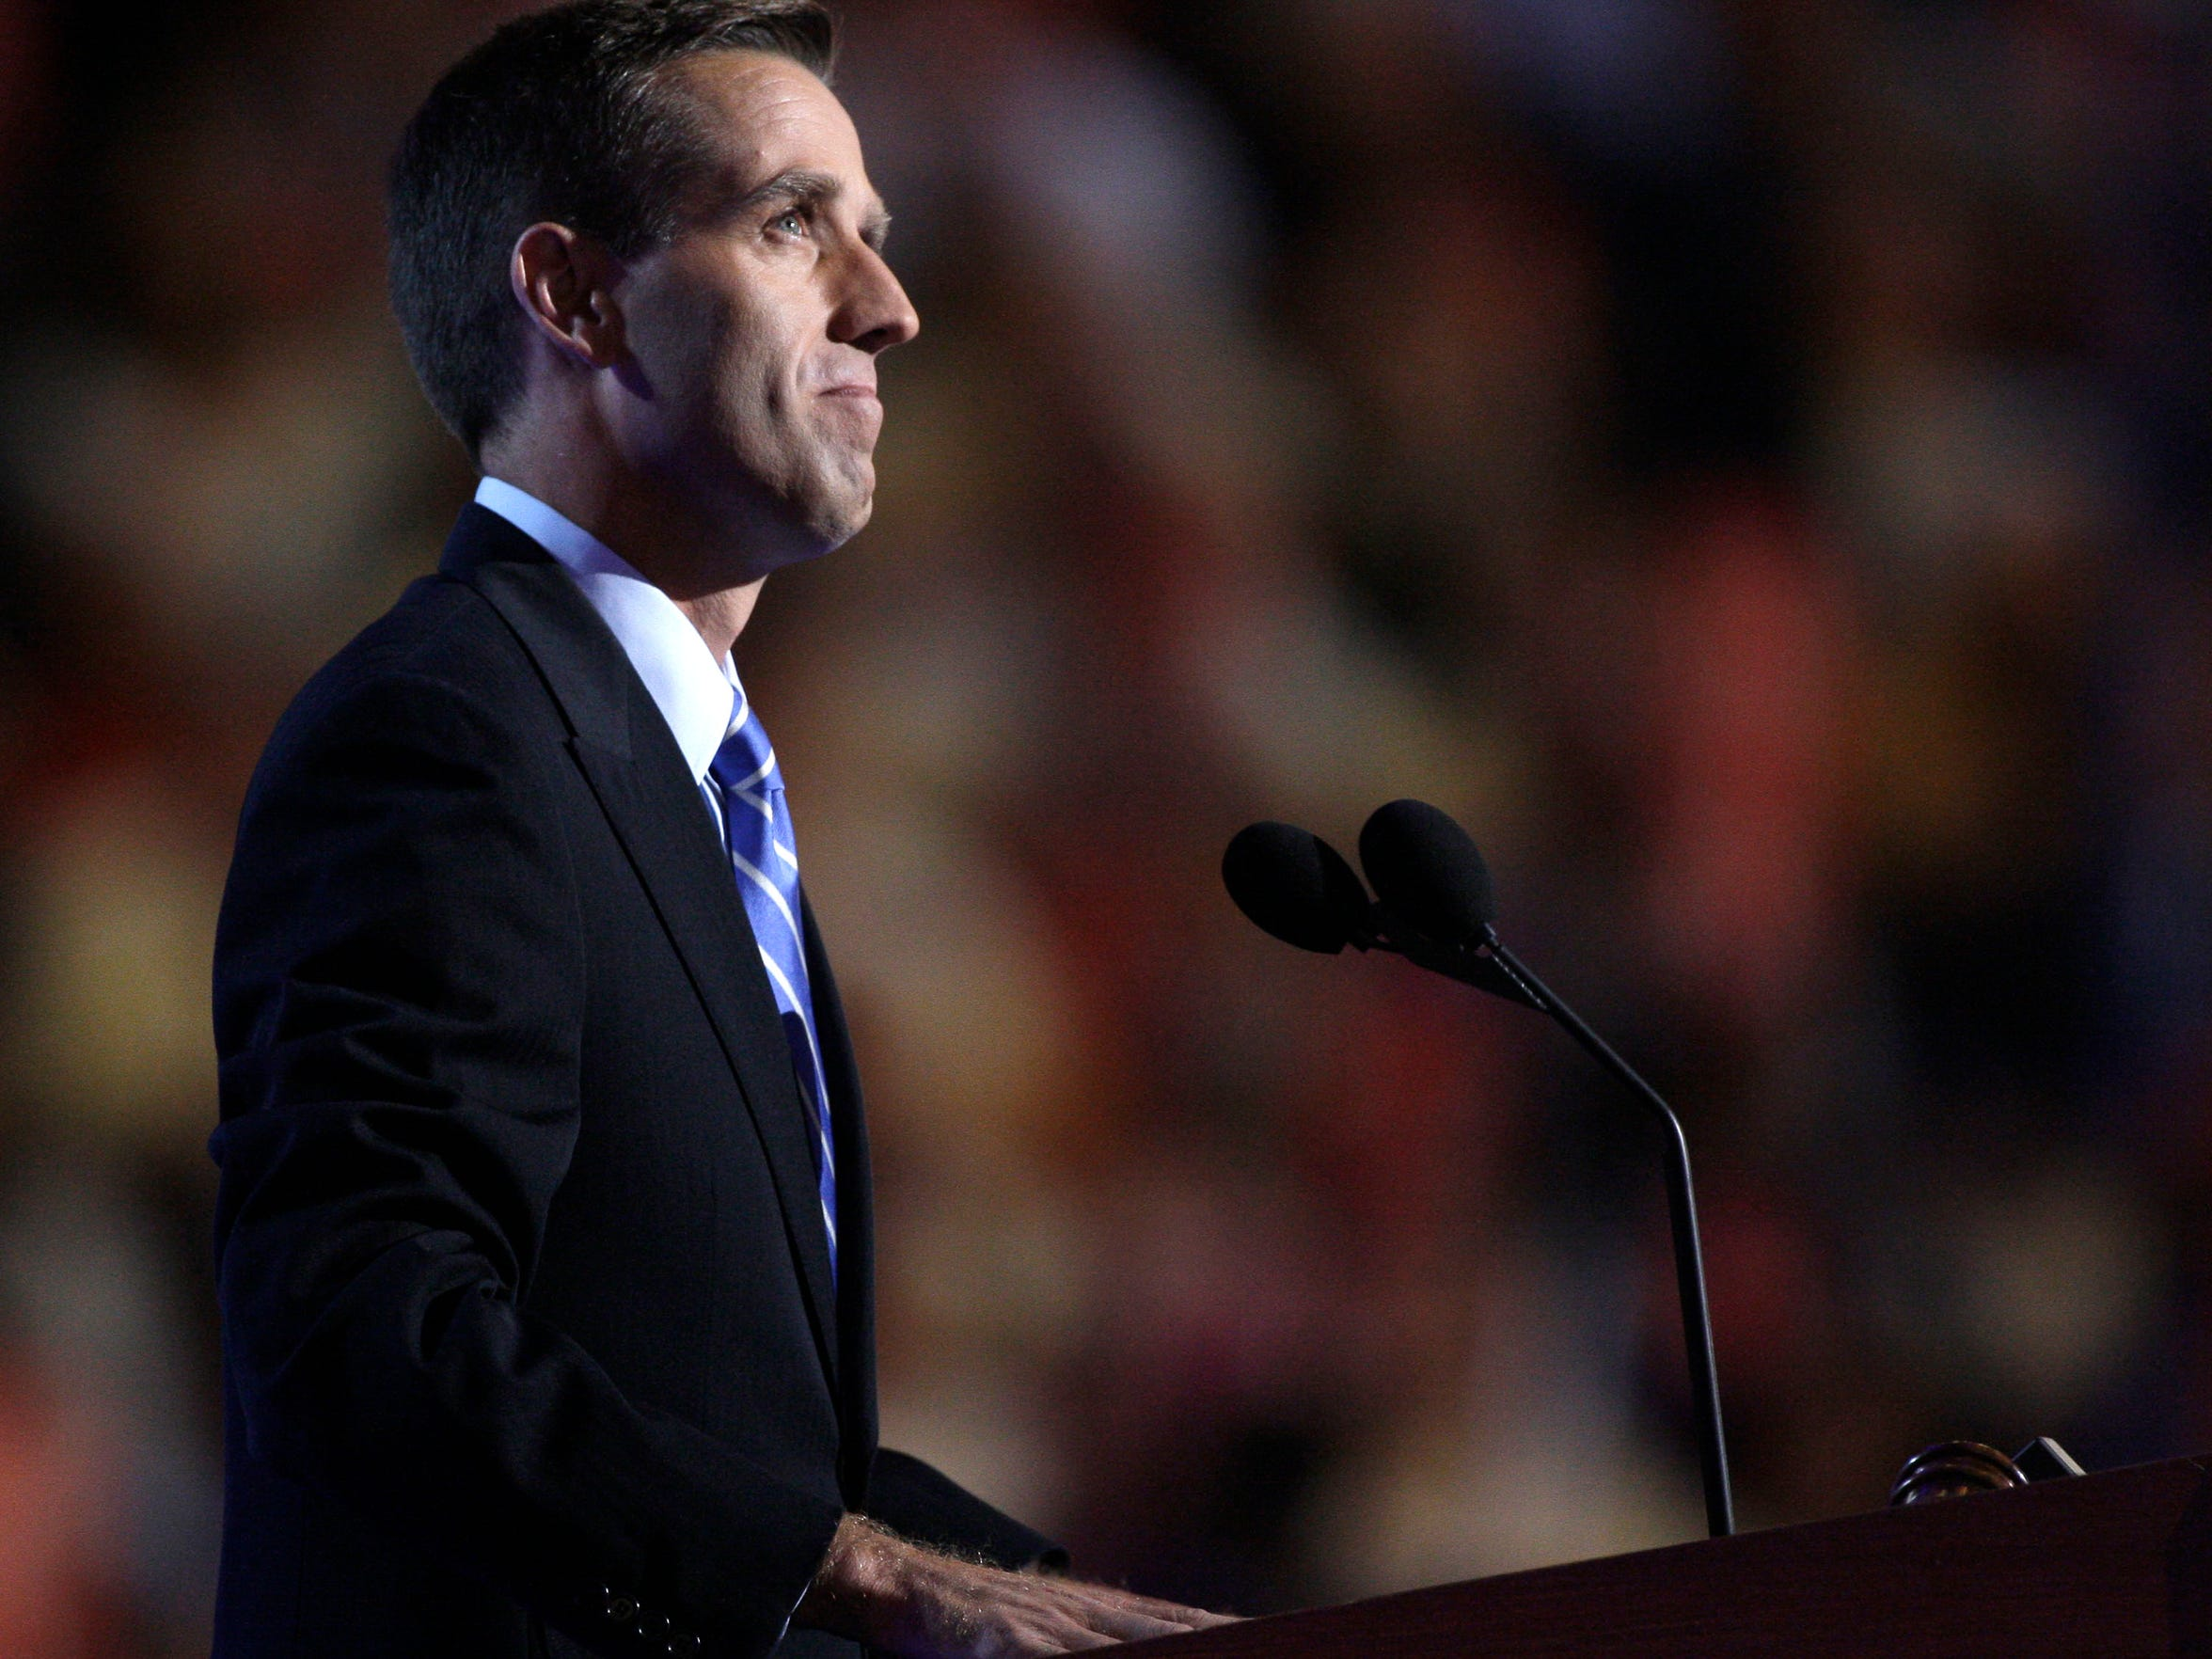 Delaware Attorney General Beau Biden, son of Democratic